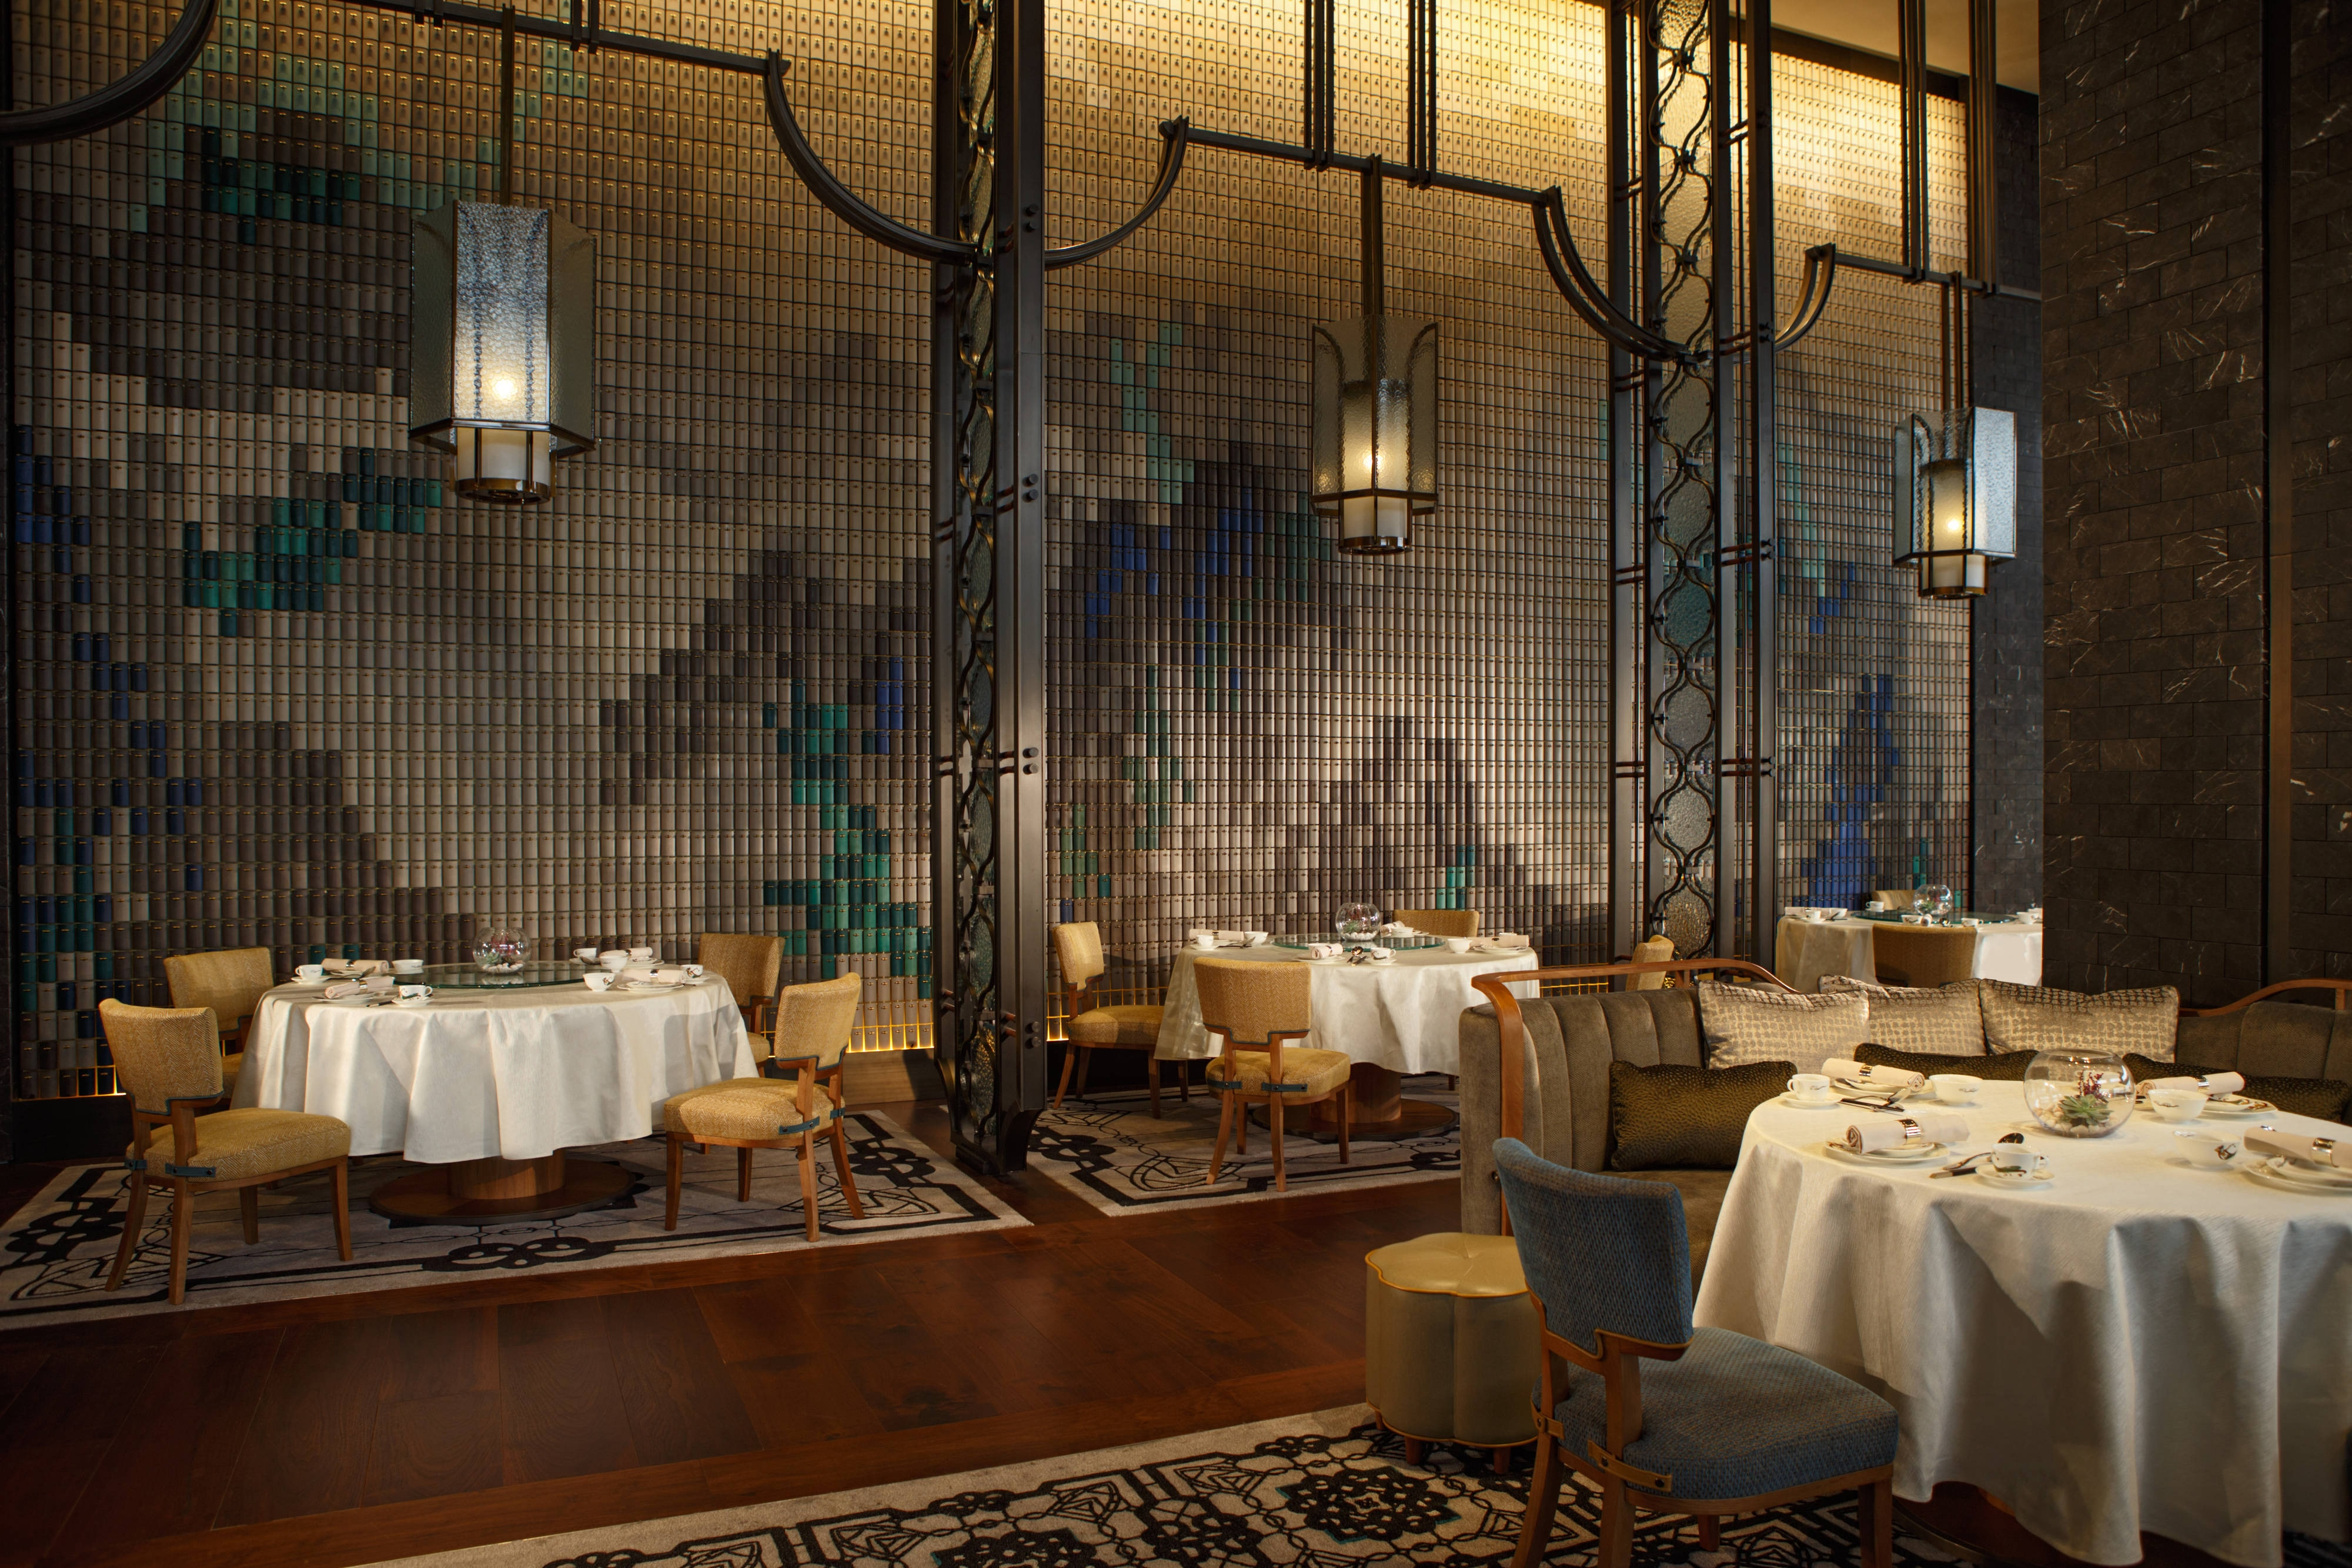 Upscale dining in Hong Kong